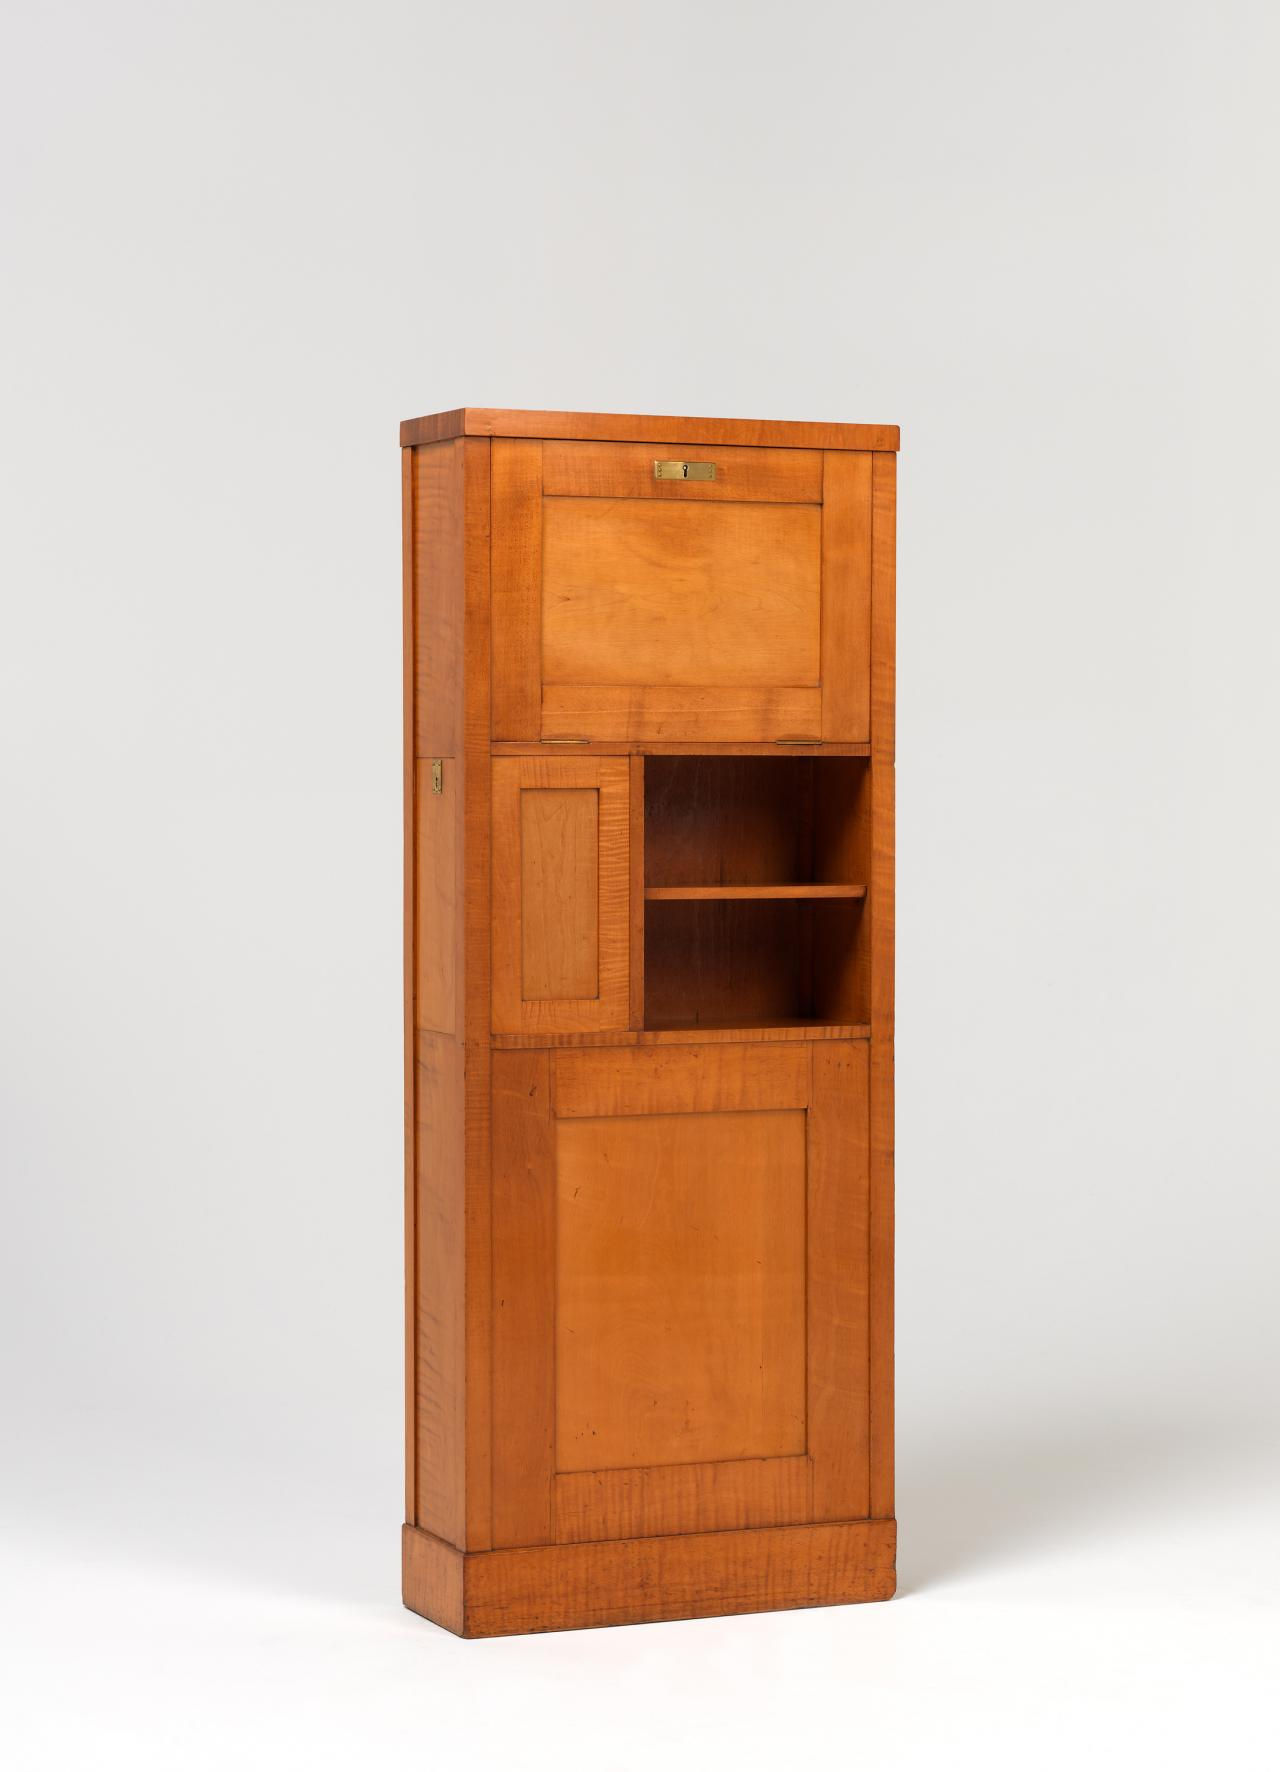 Cupboard, from the Langer apartment